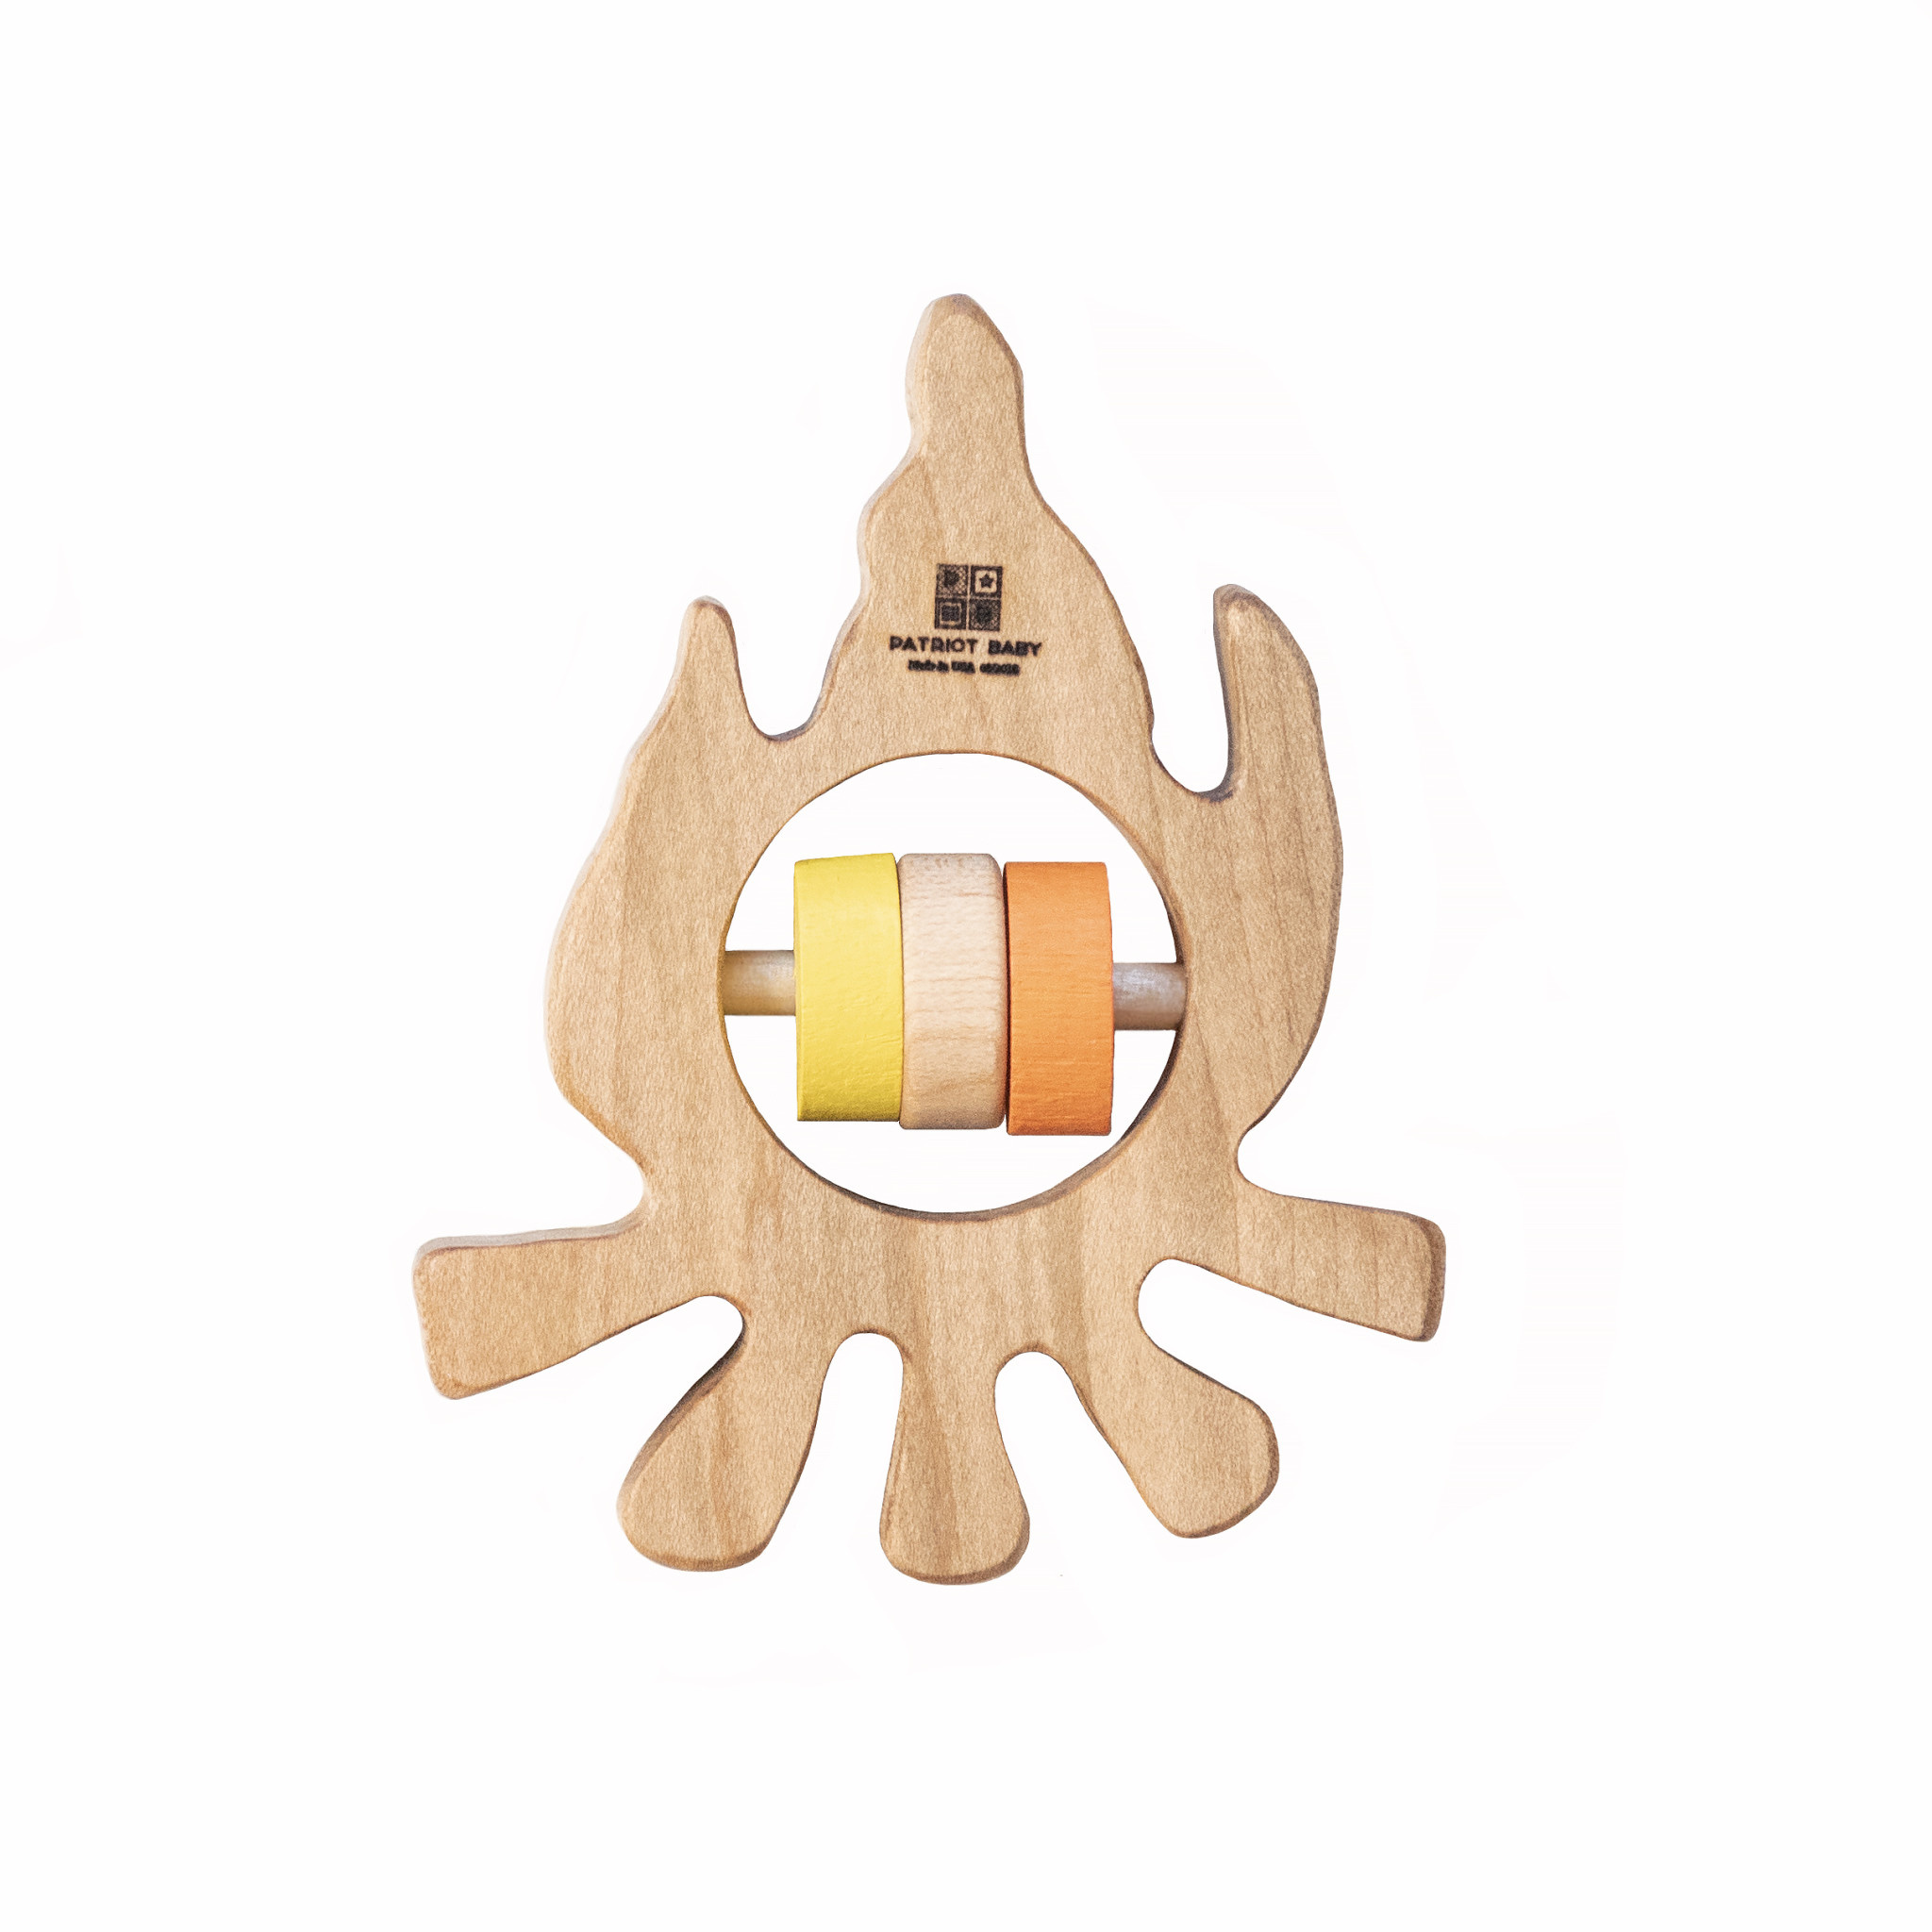 Patriot Baby Wooden Teething Rattle - Campfire